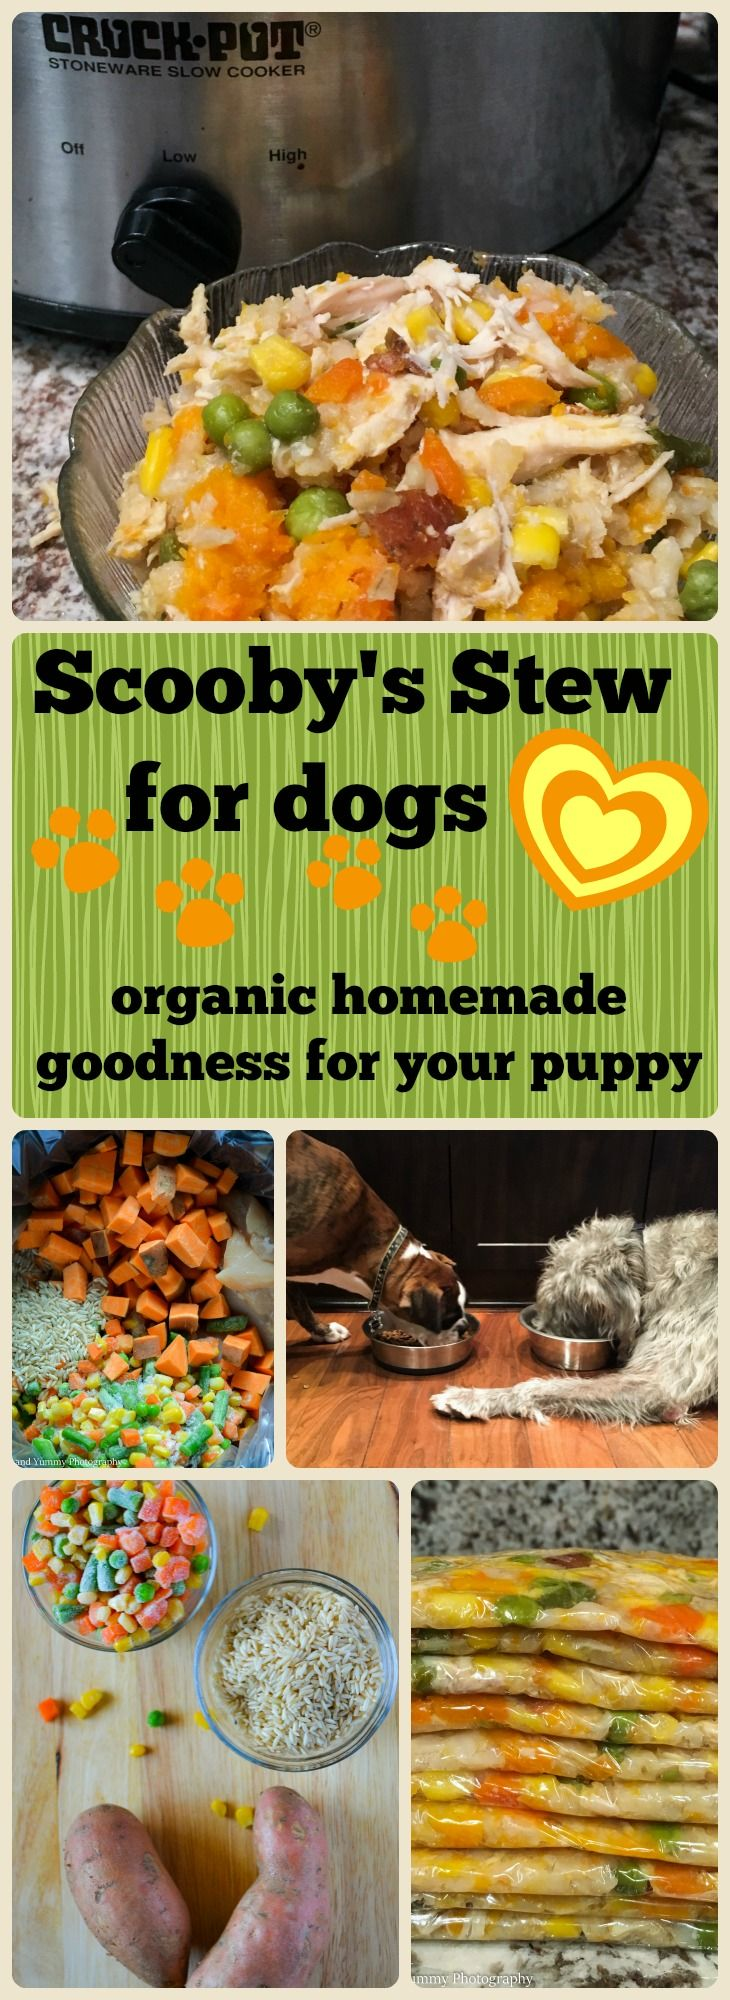 Making your own dog food is easy for you and good for your pooch too! Freeze it in individual serving size portions for quick thawing during the week.